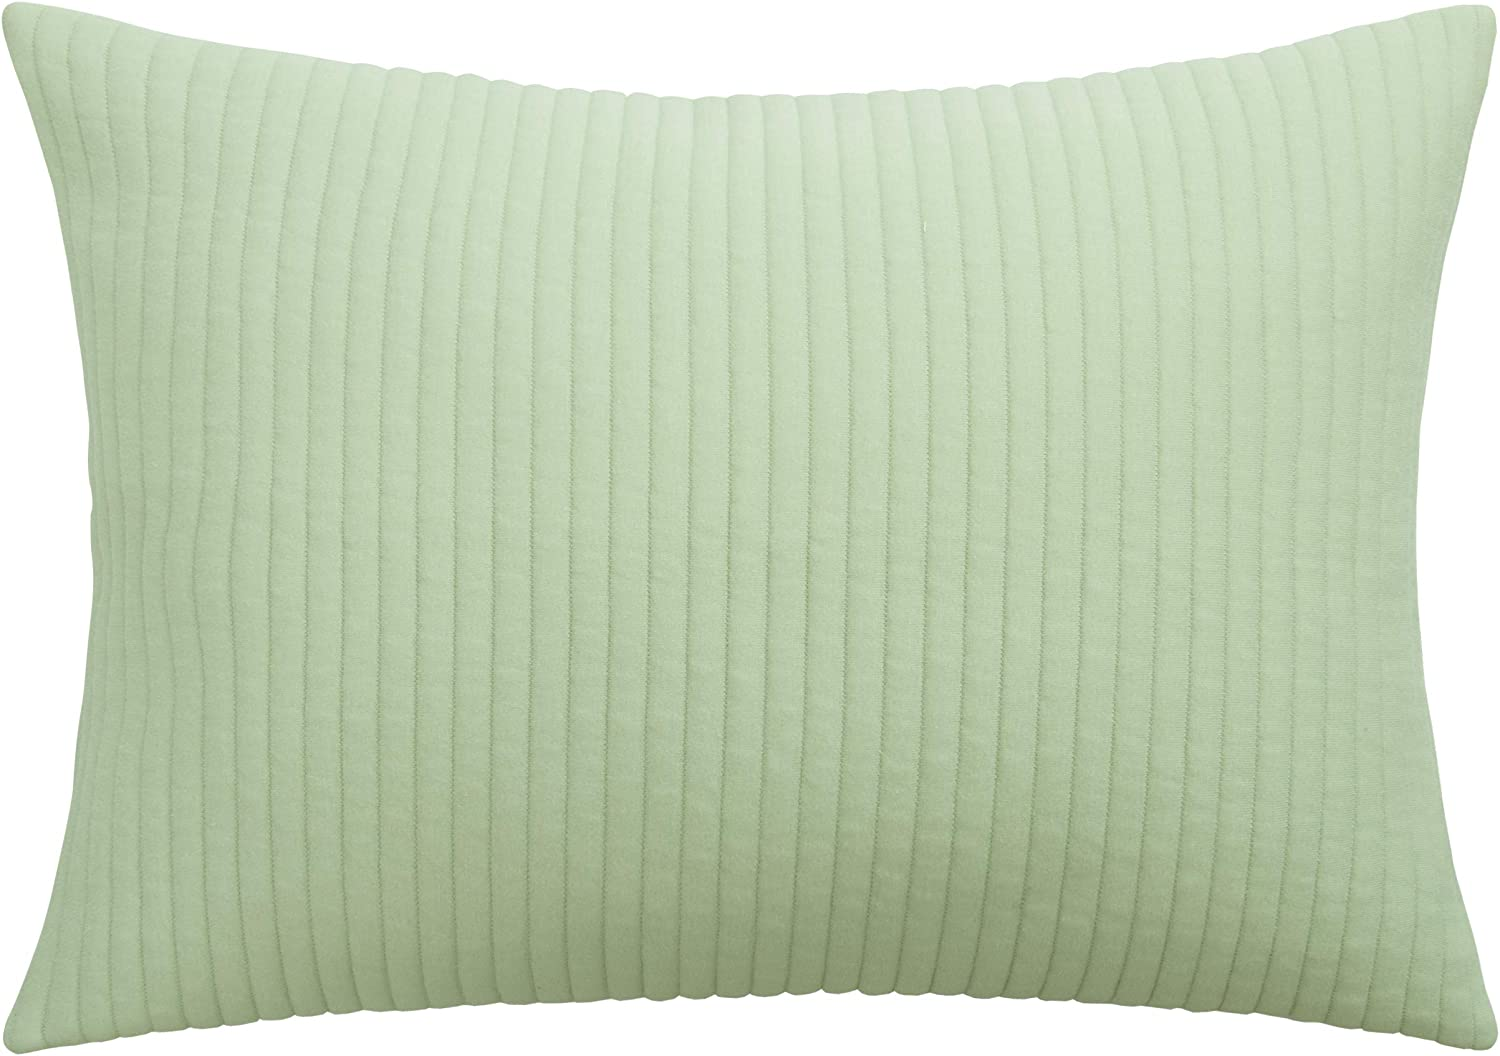 NTBAY Jersey Cotton Quilted Toddler Pillowcase, Super Soft and Breathable Zippered Closure Travel Pillow Cover, 13 x 18 Inches, Green